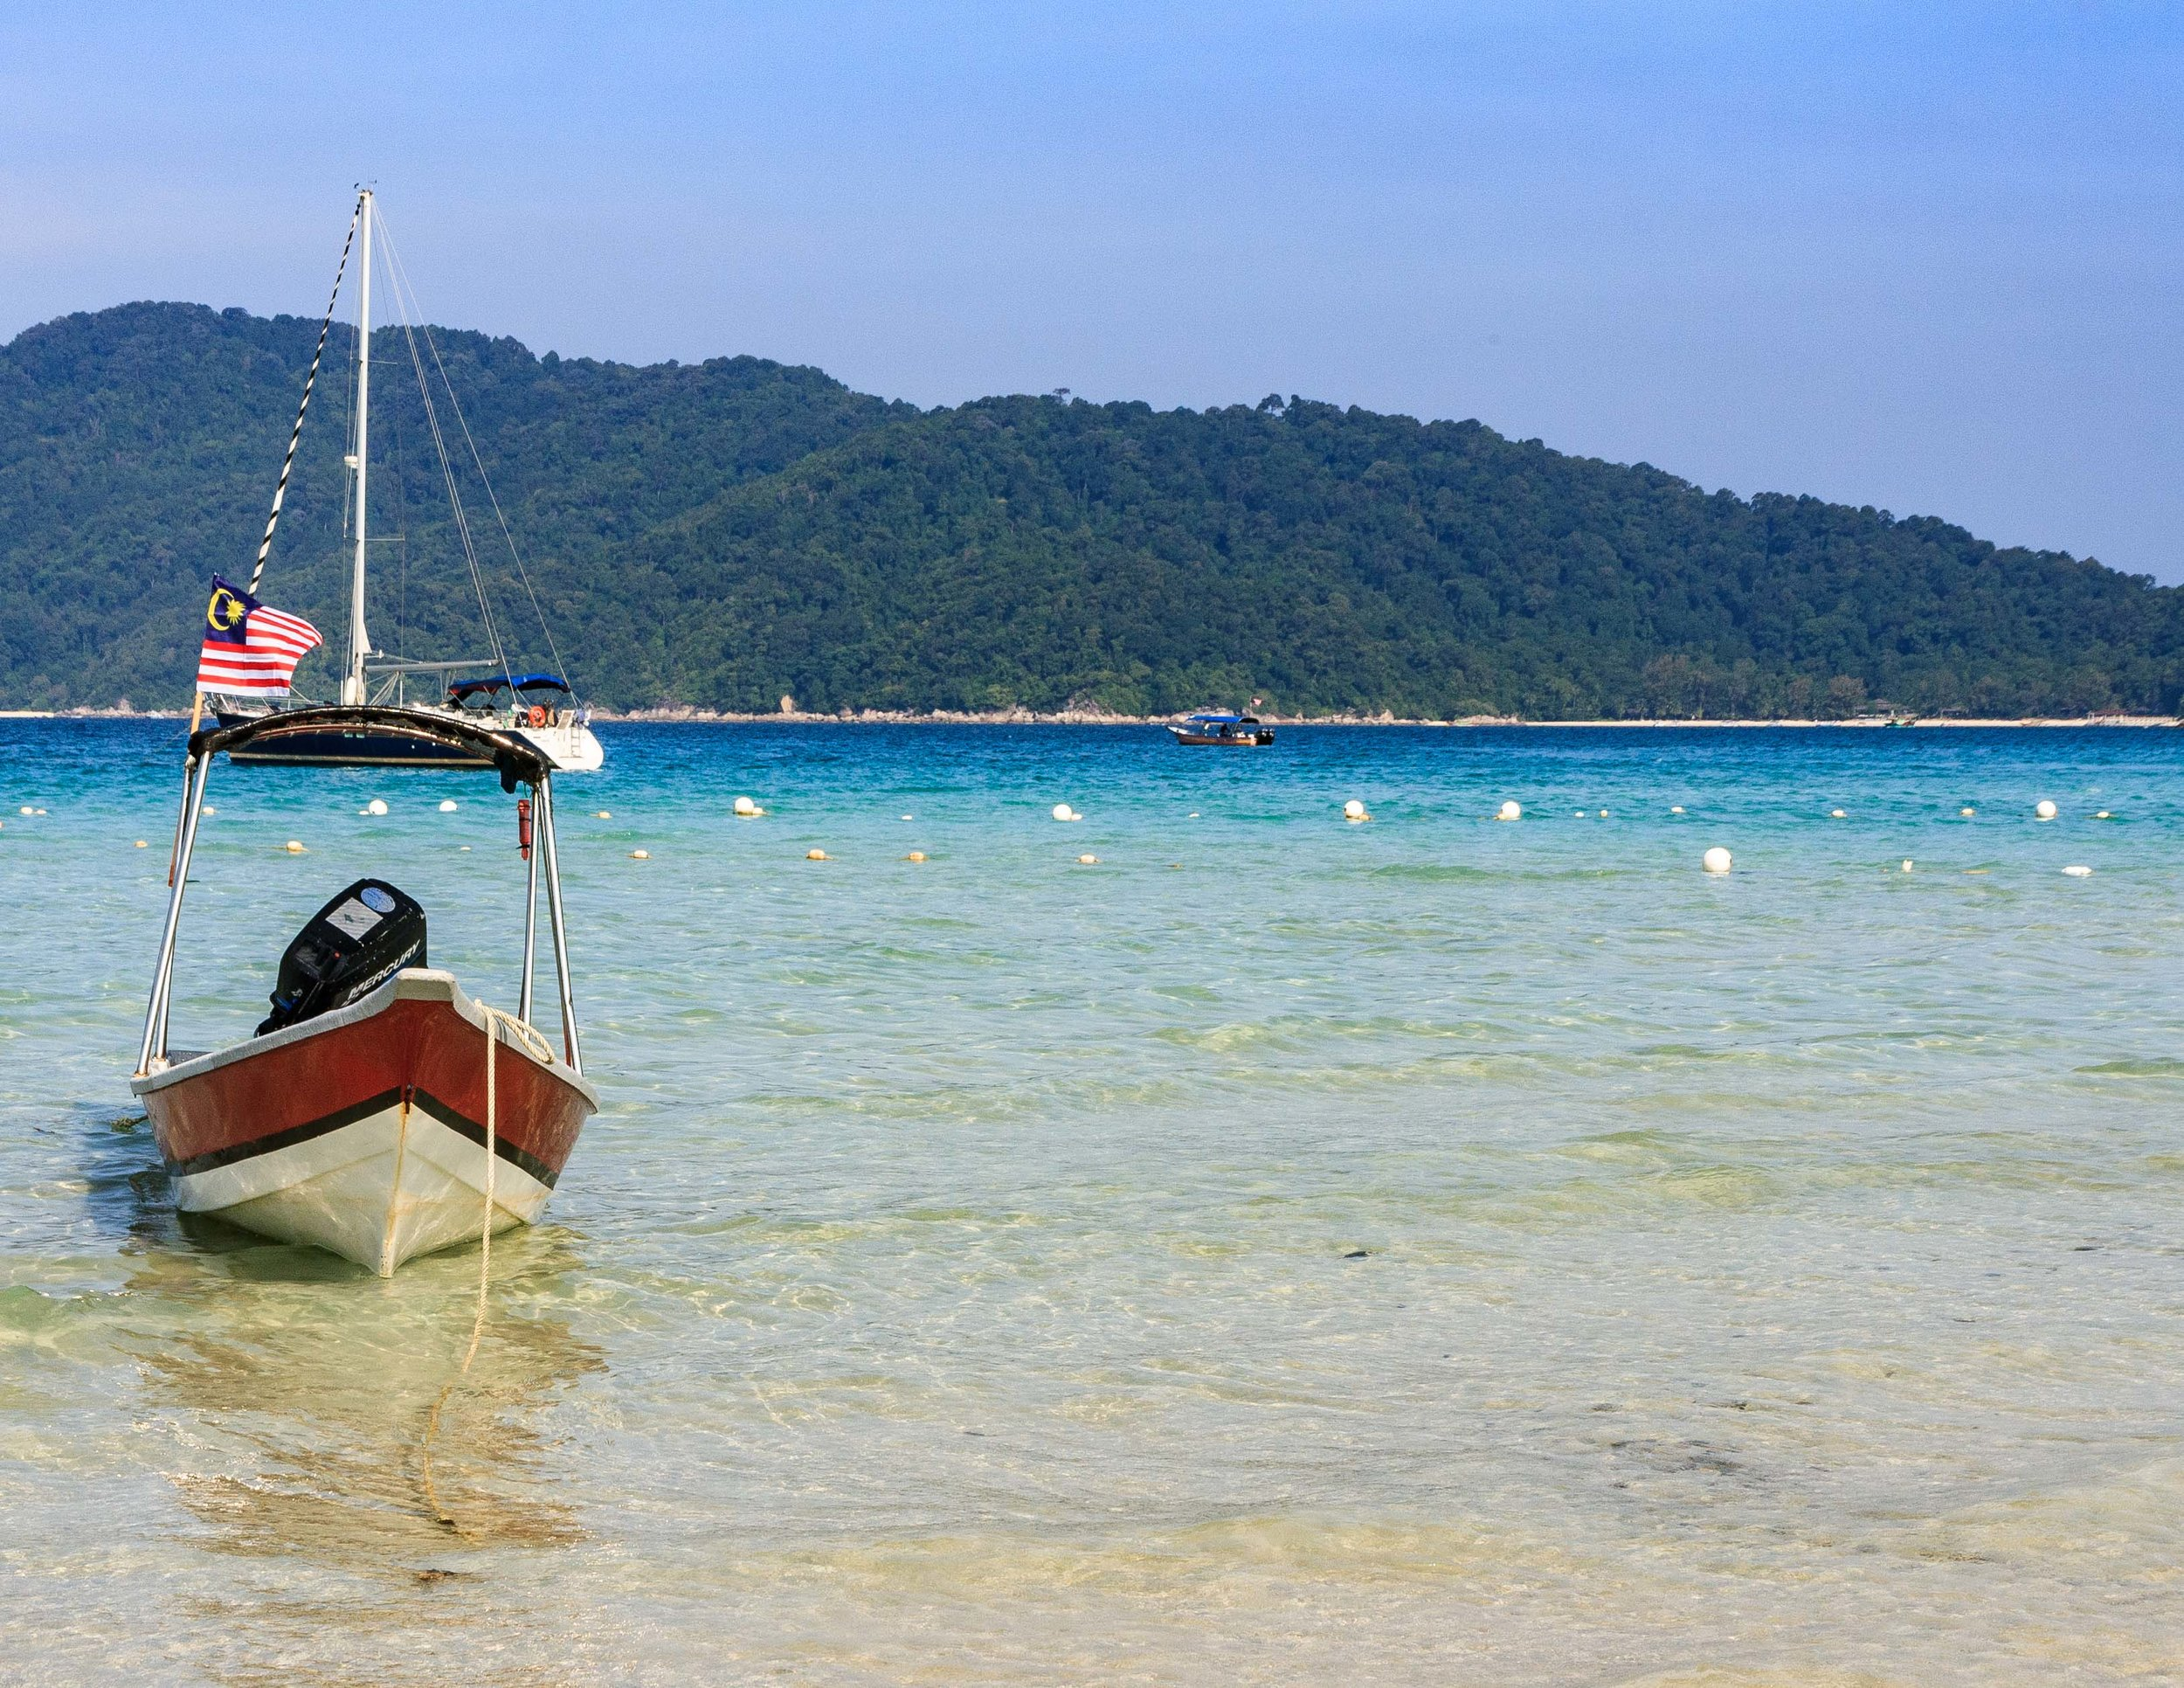 Best things to do in Malaysia: swim with turtles in the Perhentians